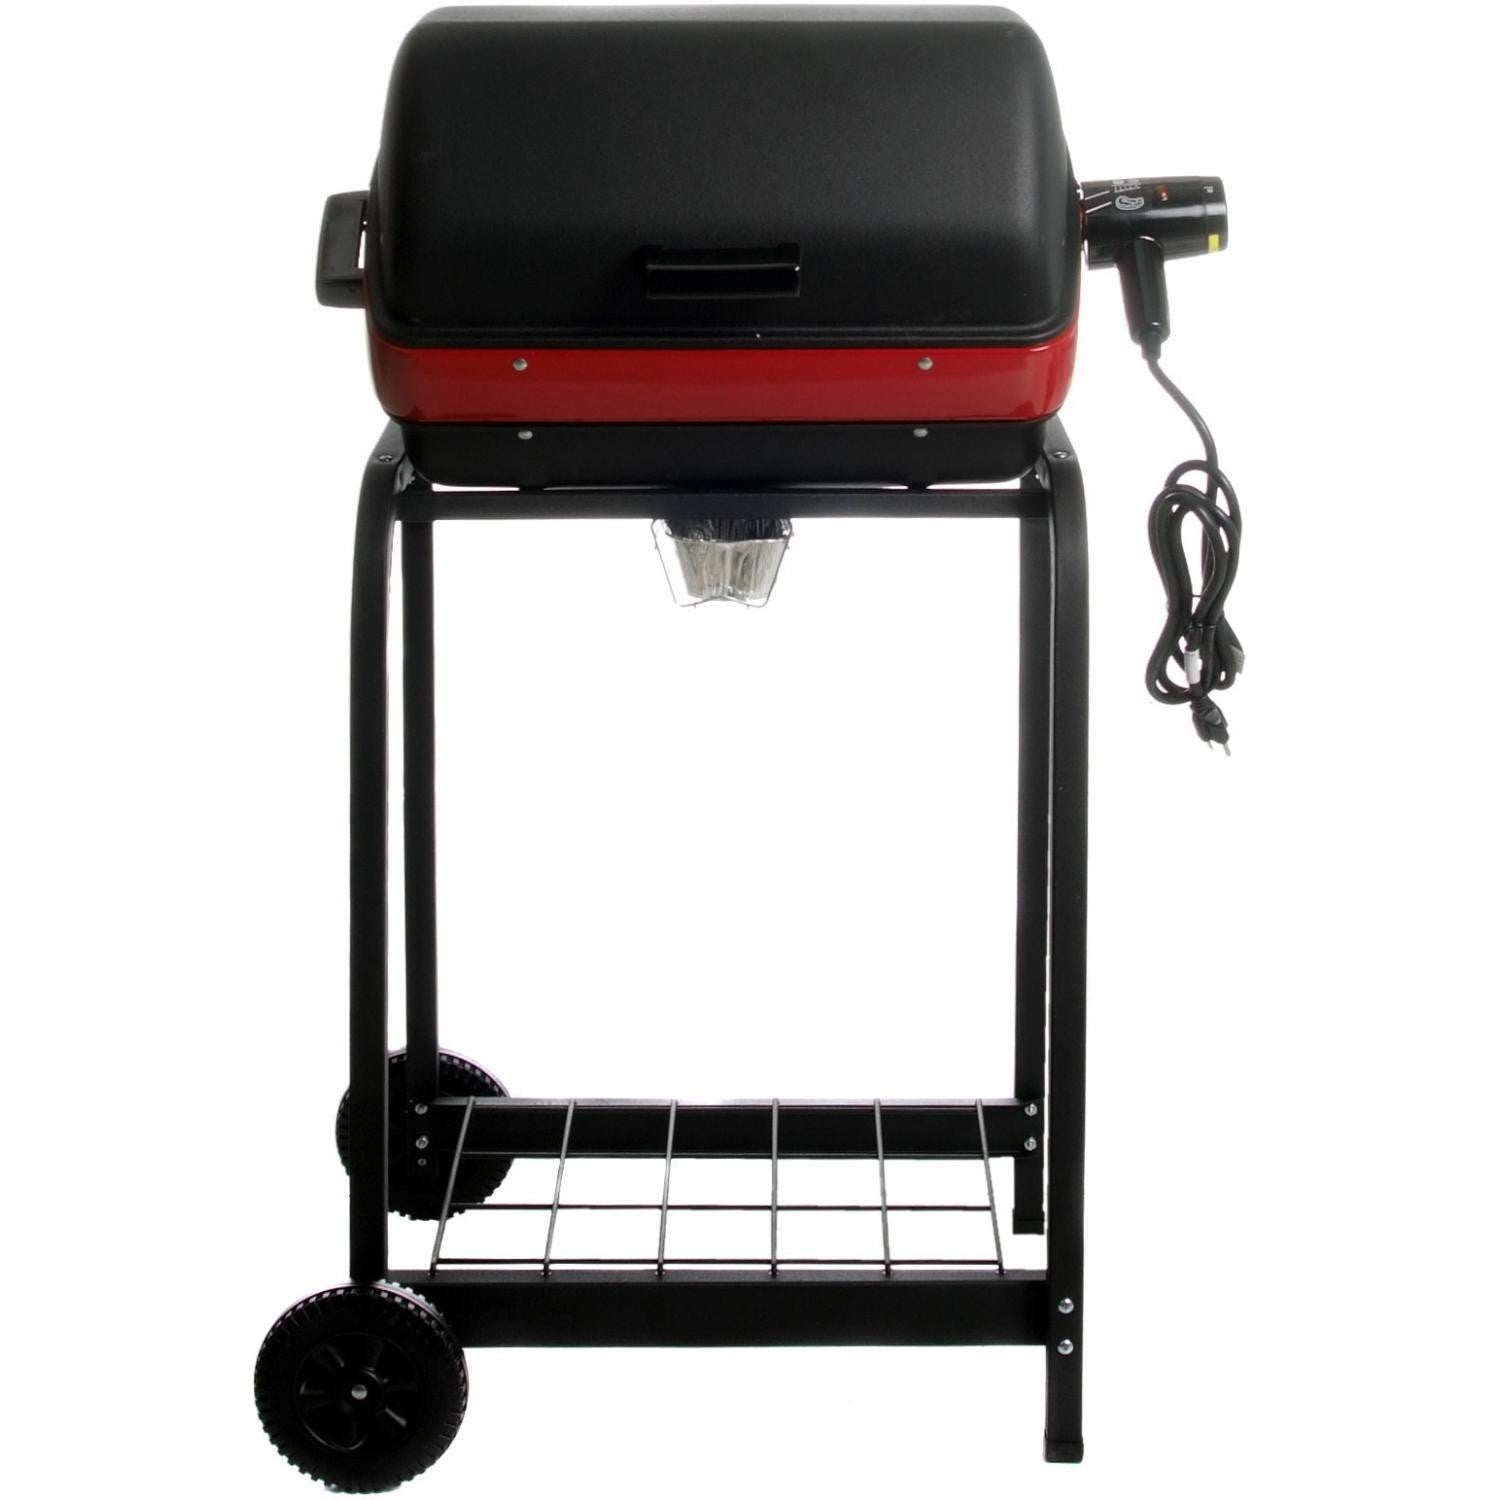 Electric Grills Product ~ Meco electric grill on cart the smokin